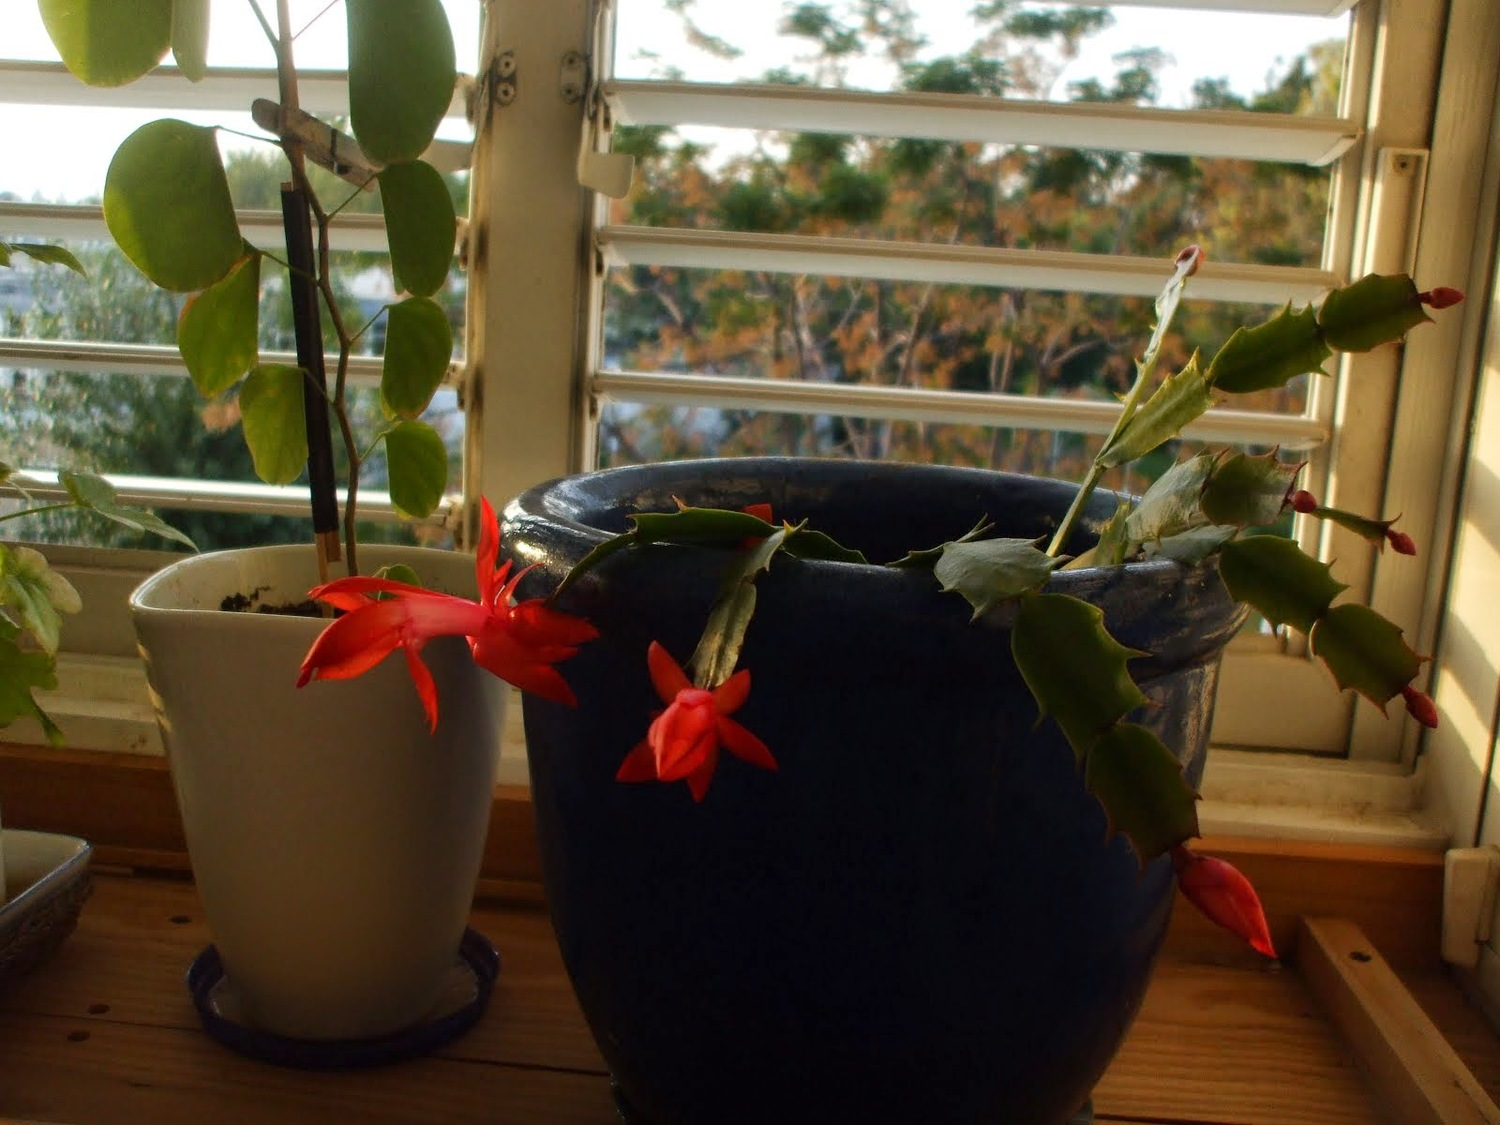 christmas cactus a multitude of blooms with little care - How To Take Care Of Christmas Cactus